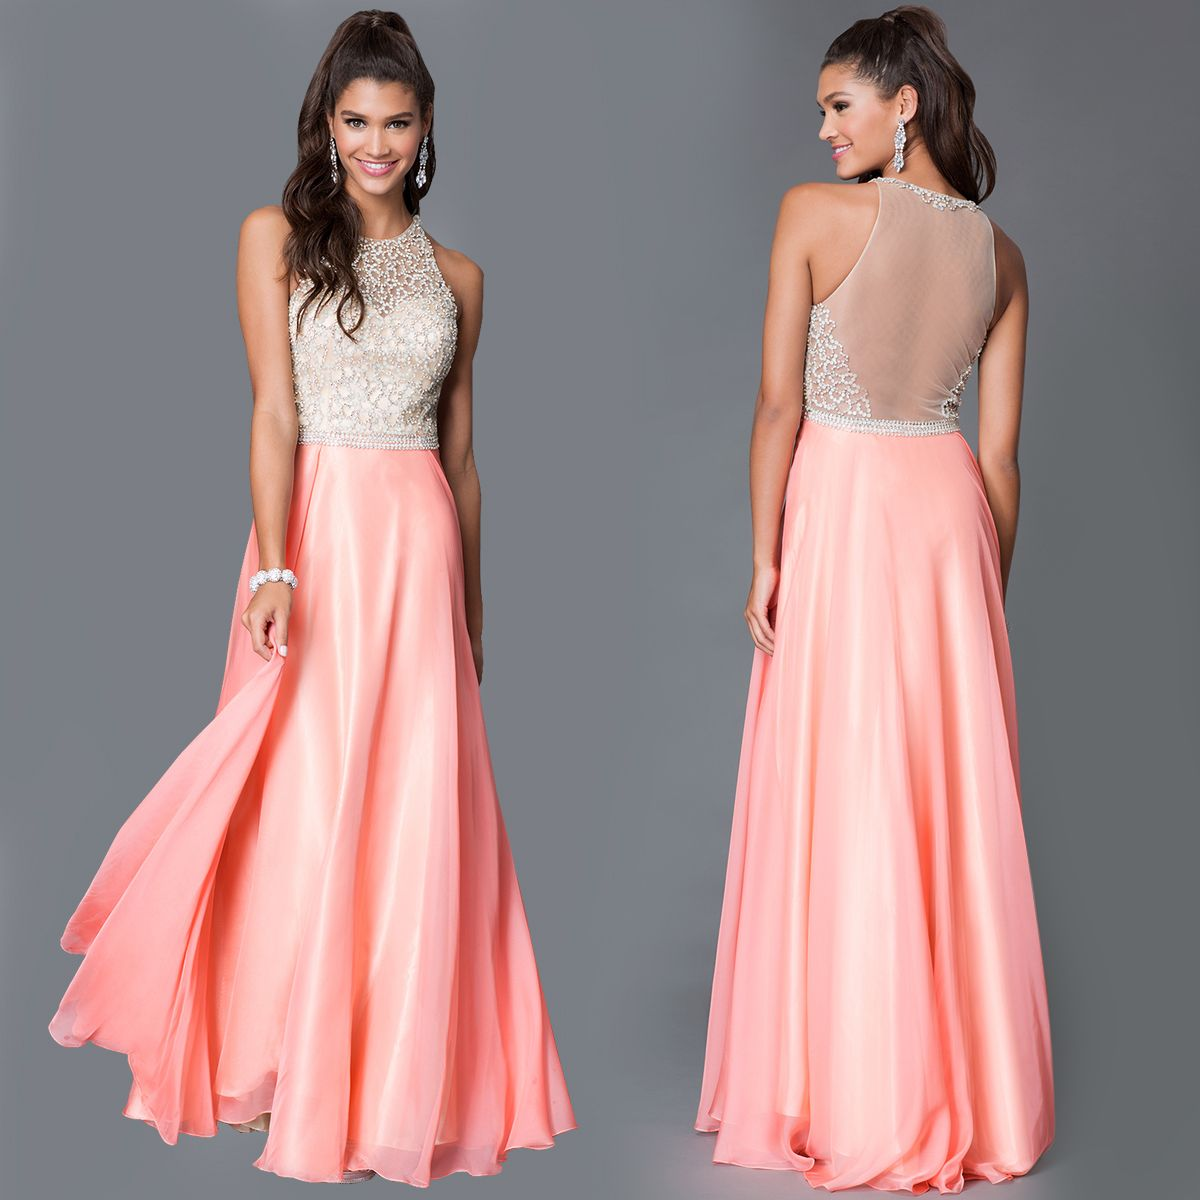 Dave & Johnny Long Coral Dress With Beaded Bodice | Prom 2016 Top ...